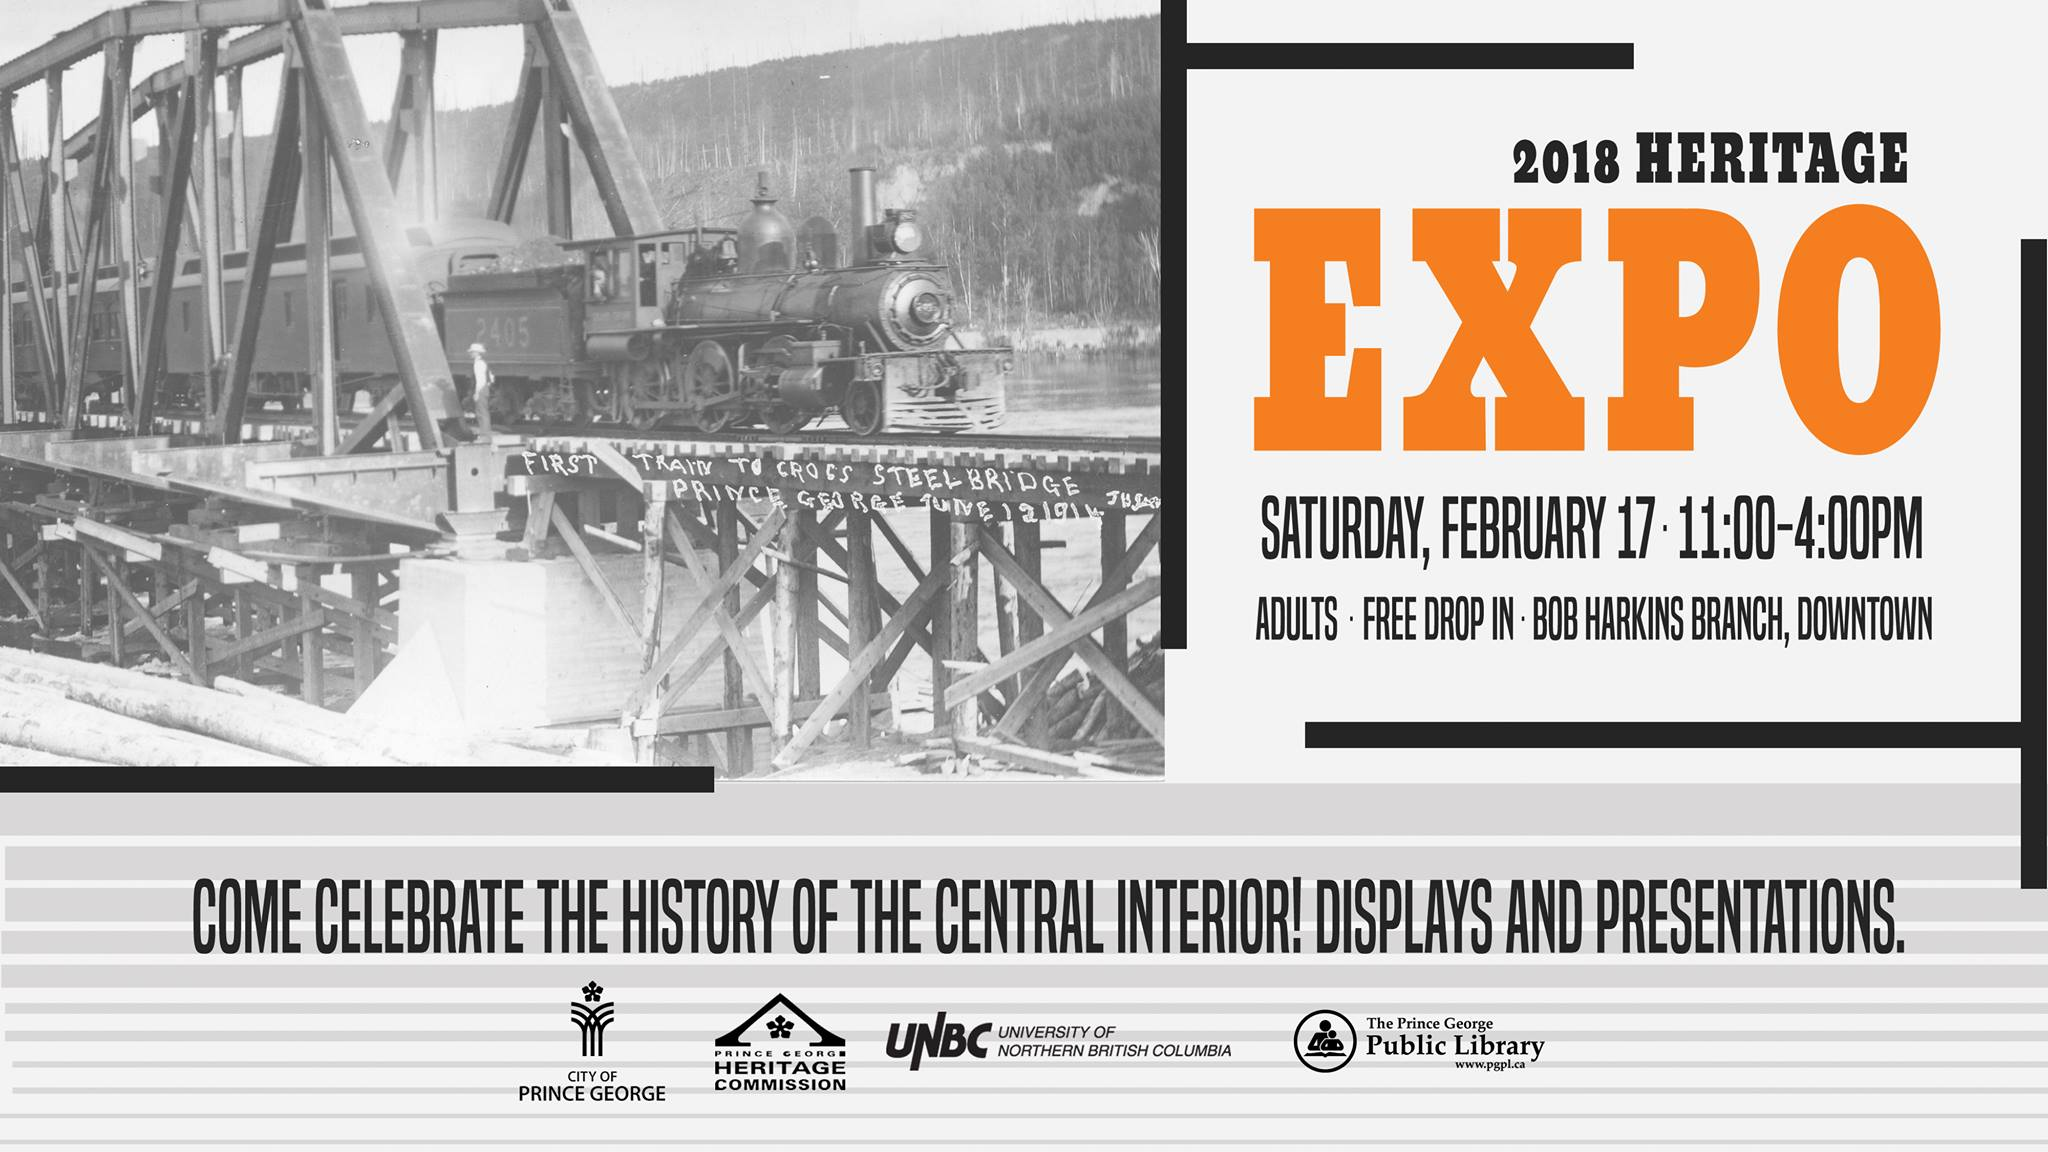 2018 Heritage Expo - celebrate the history of Prince George and the central interior.